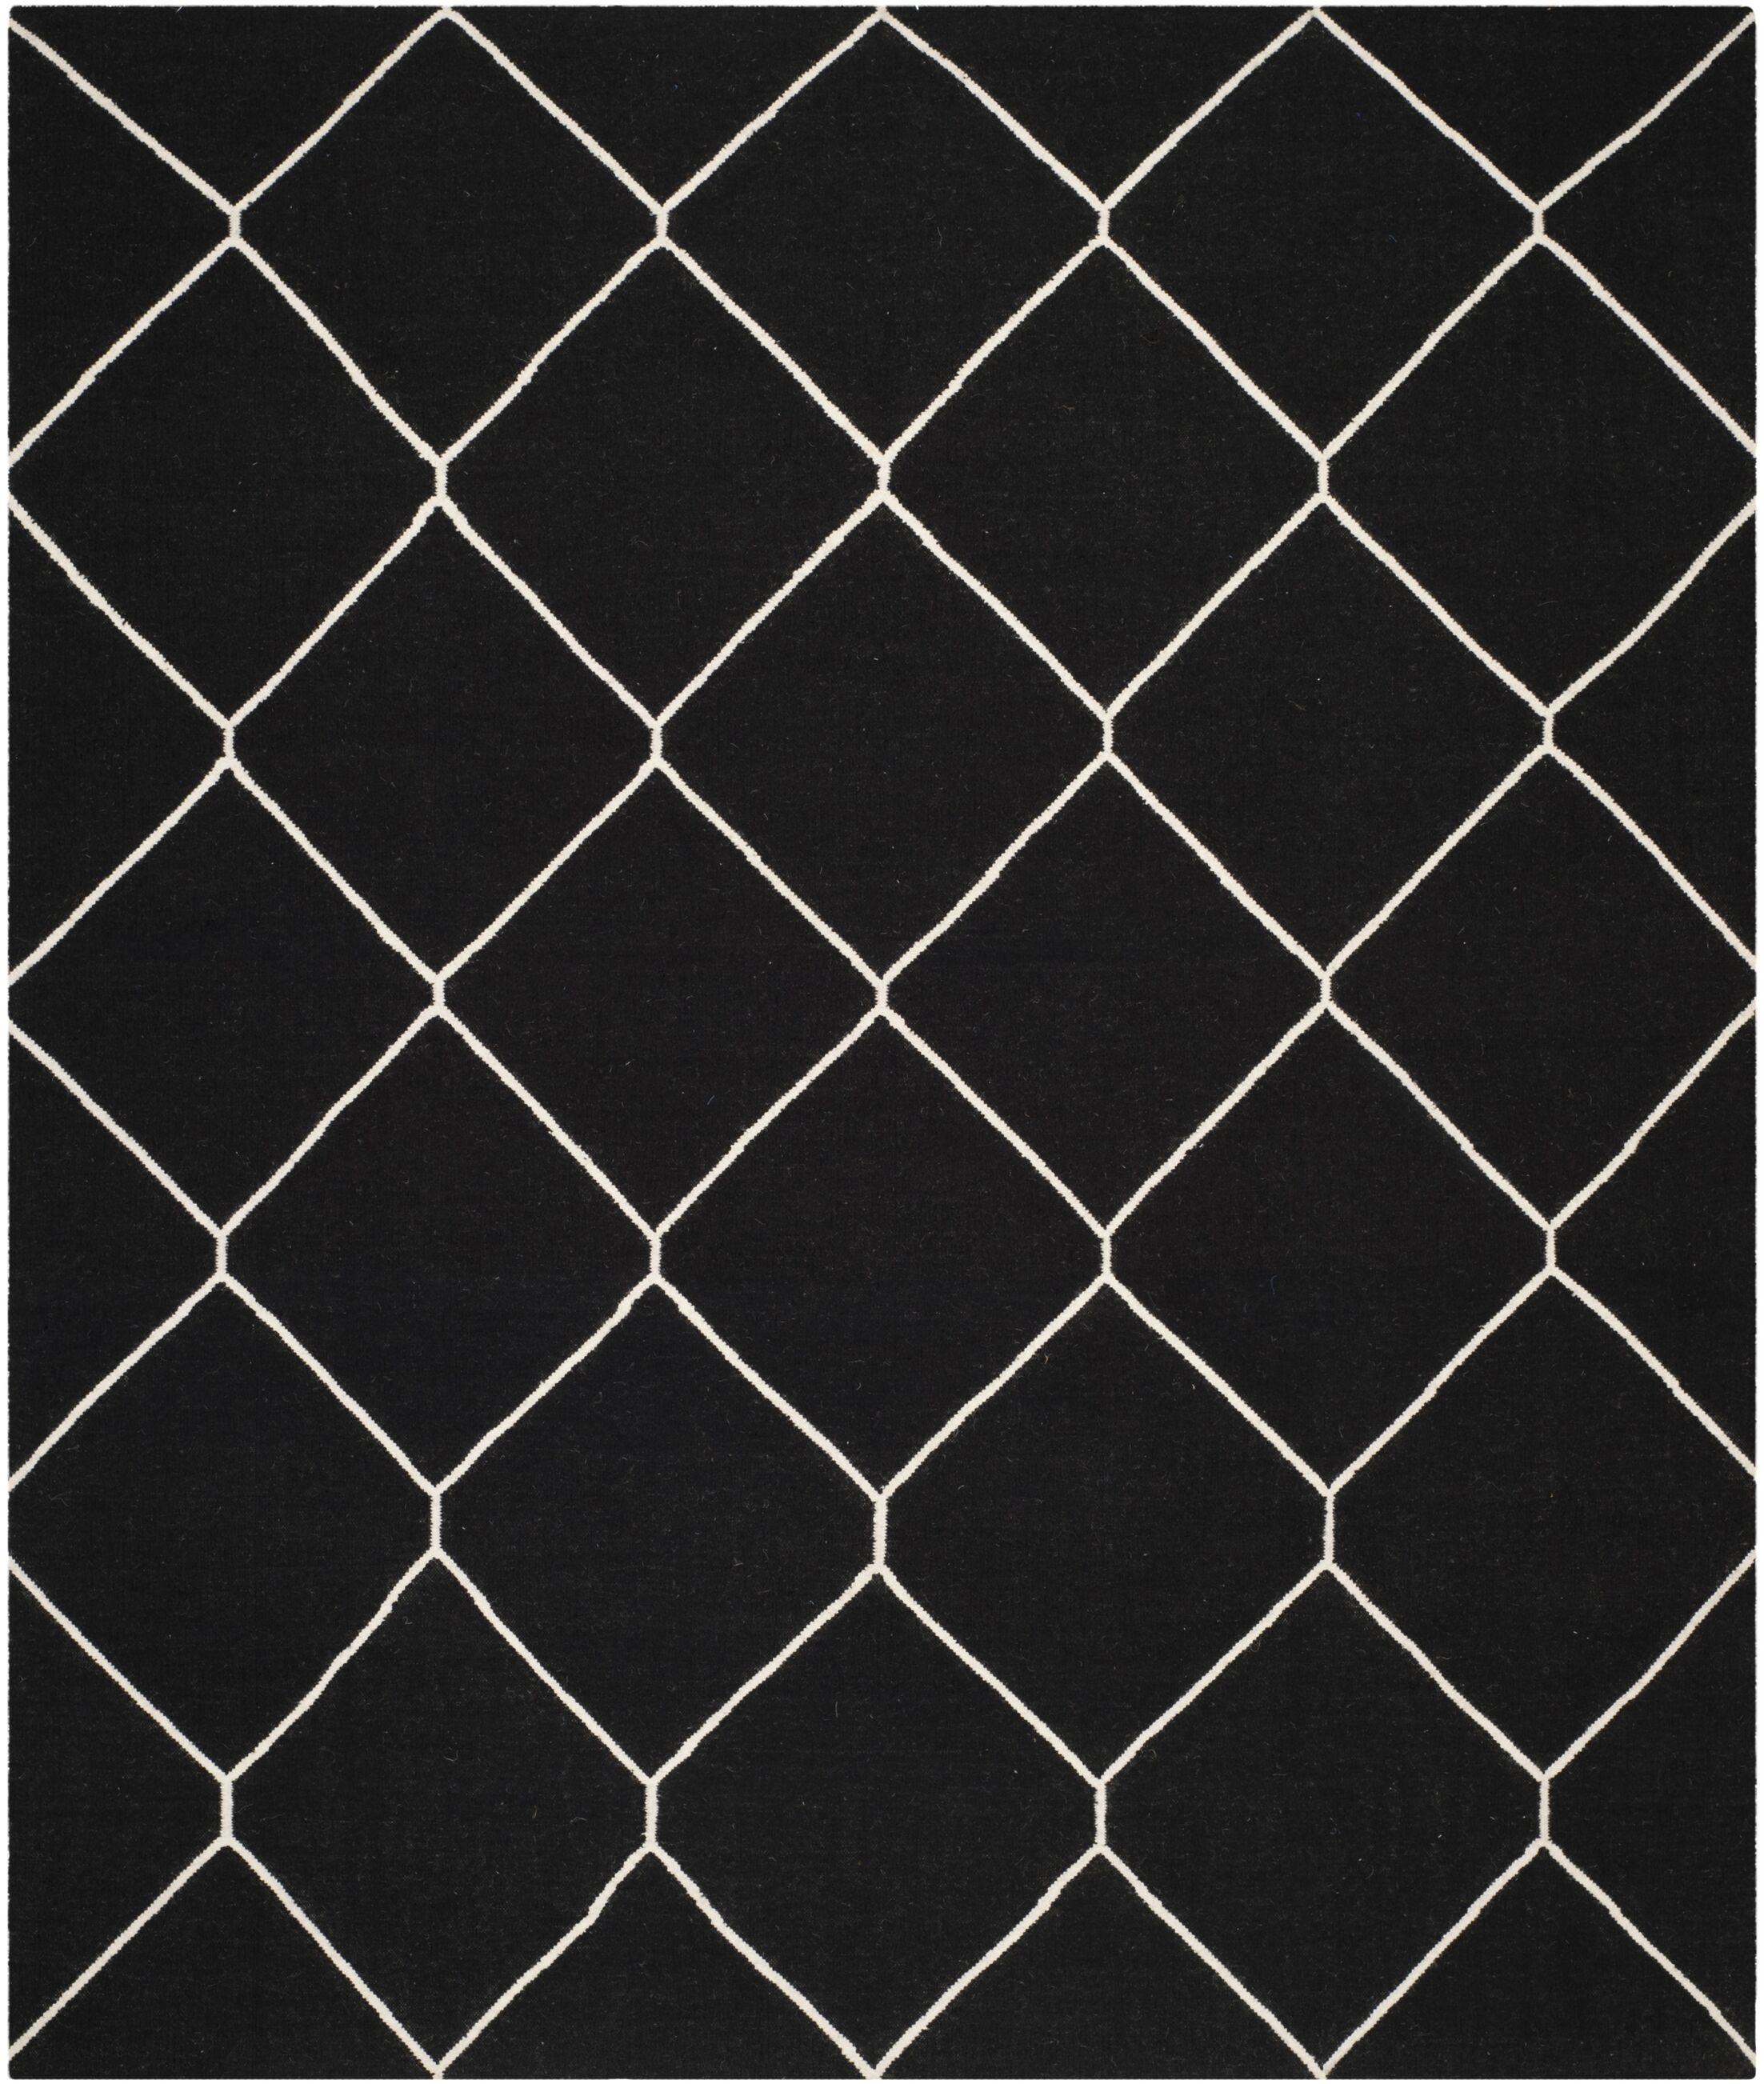 Dhurries Black/Ivory Area Rug Rug Size: Rectangle 8' x 10'